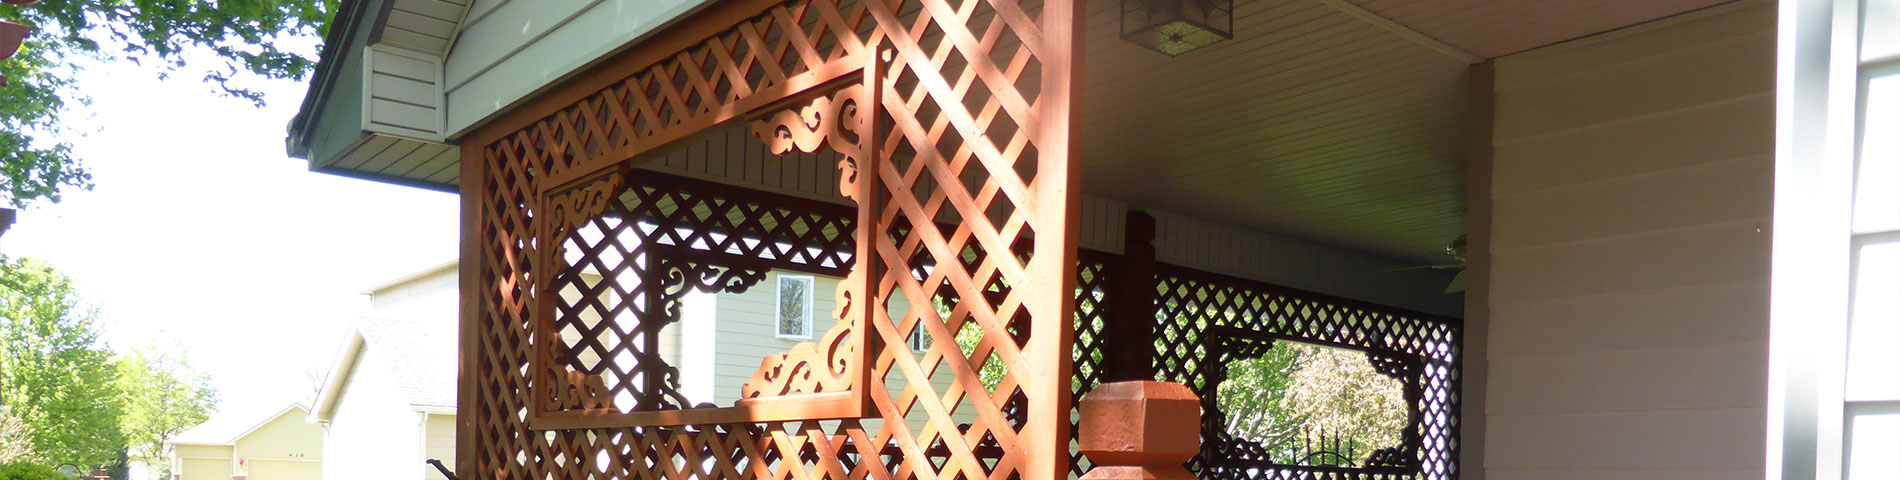 Exterior Remodeling Services In Wichita General Contractor